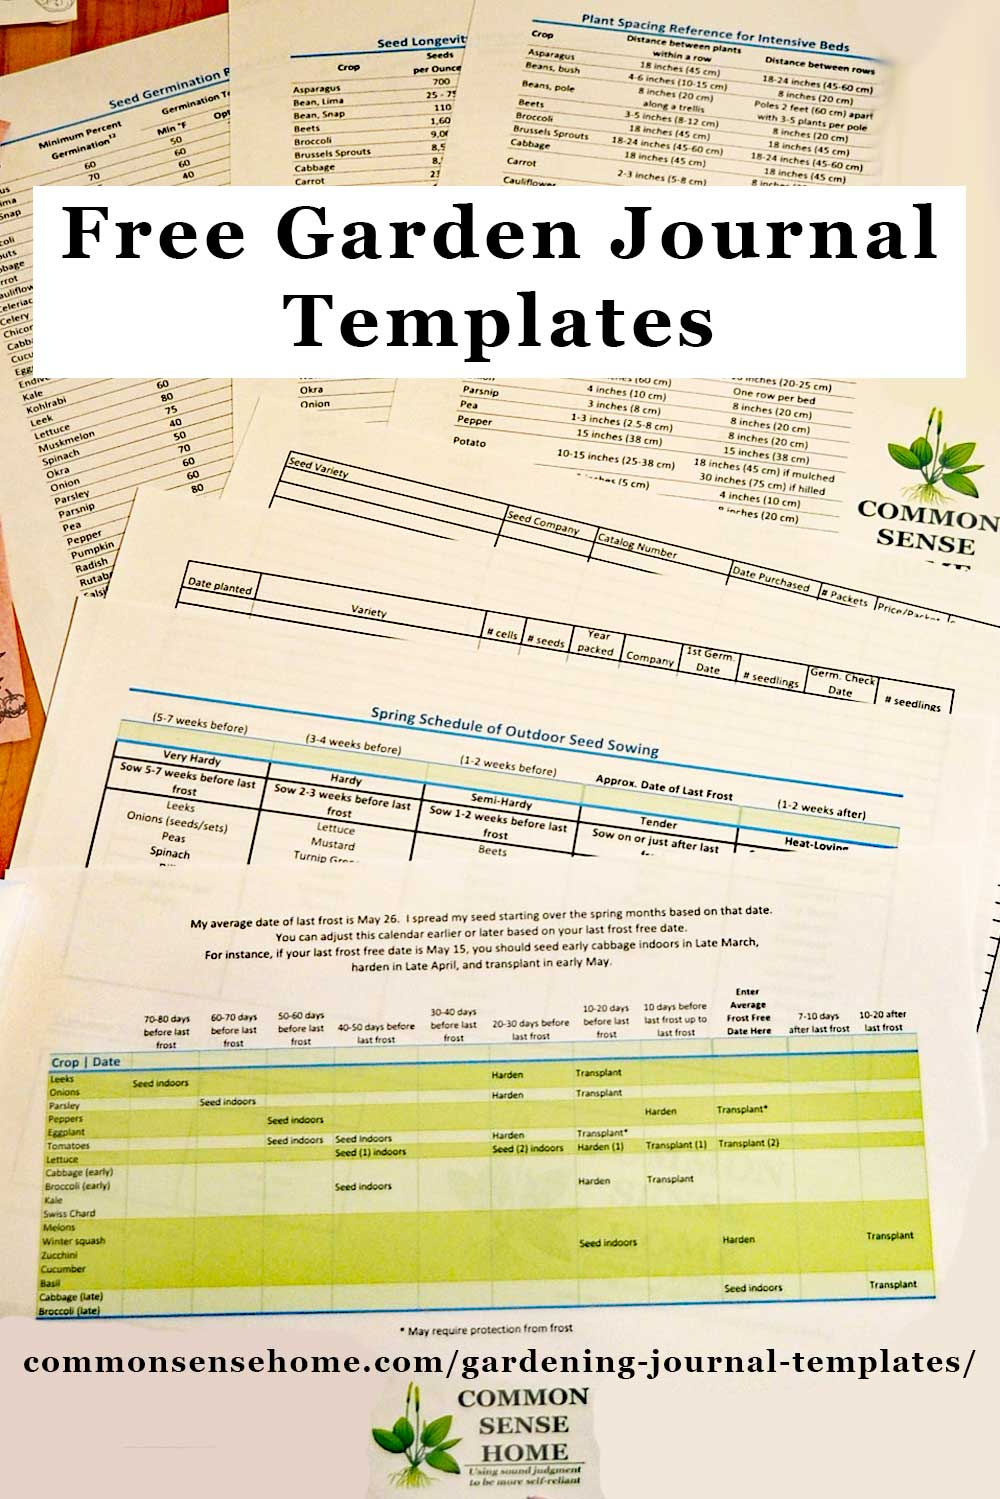 Free Gardening Journal Templates And Other Garden Record with Vegetable Planting Calendar Excel